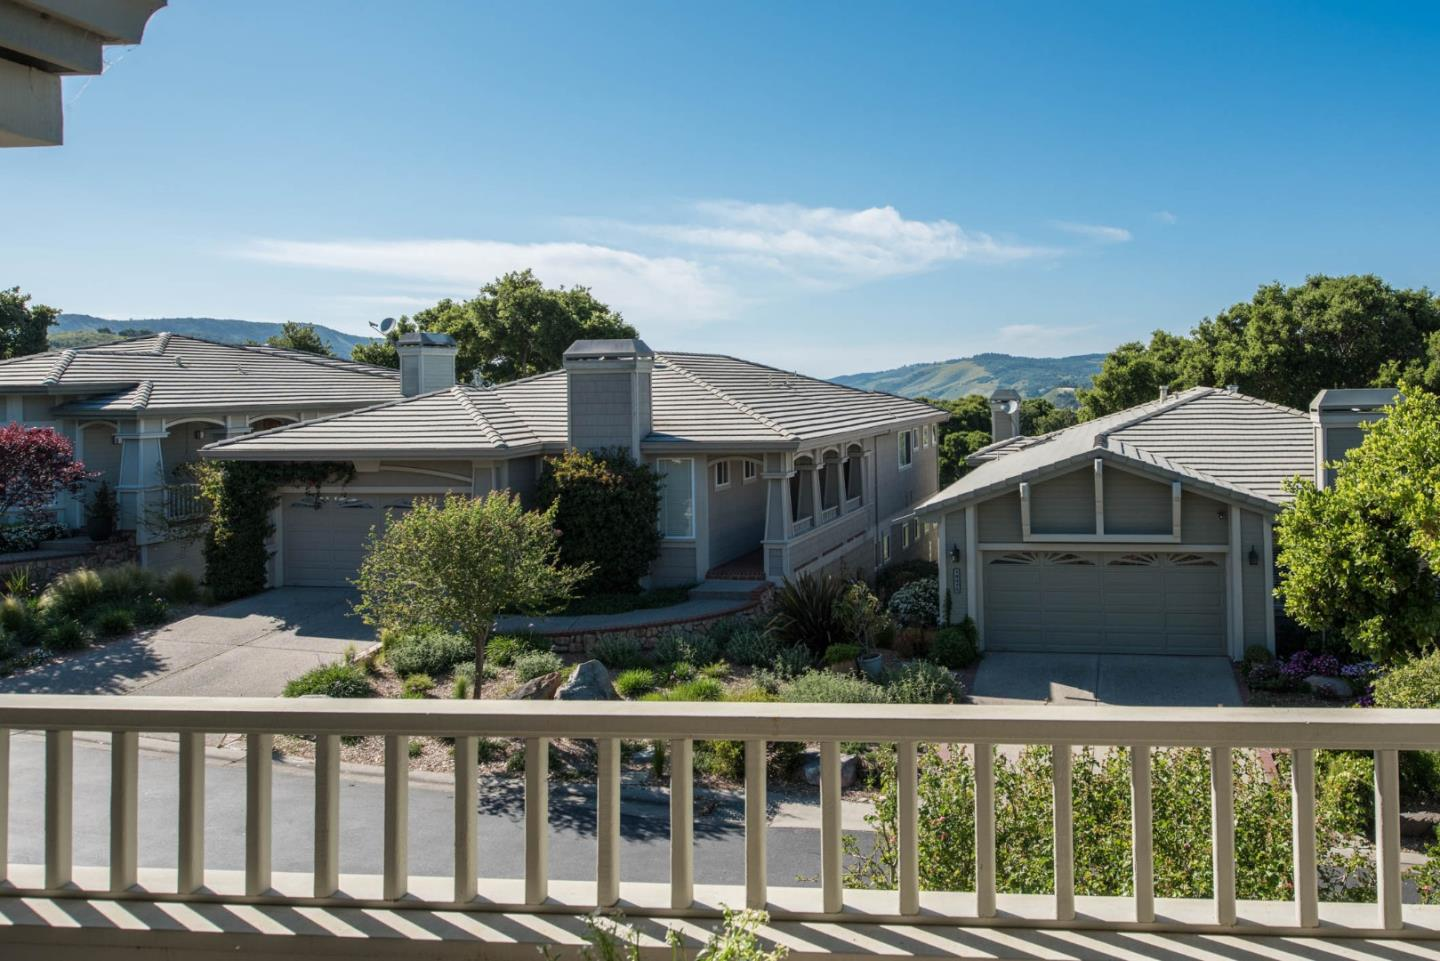 Additional photo for property listing at 10472 Fairway Ln  CARMEL VALLEY, CALIFORNIA 93923